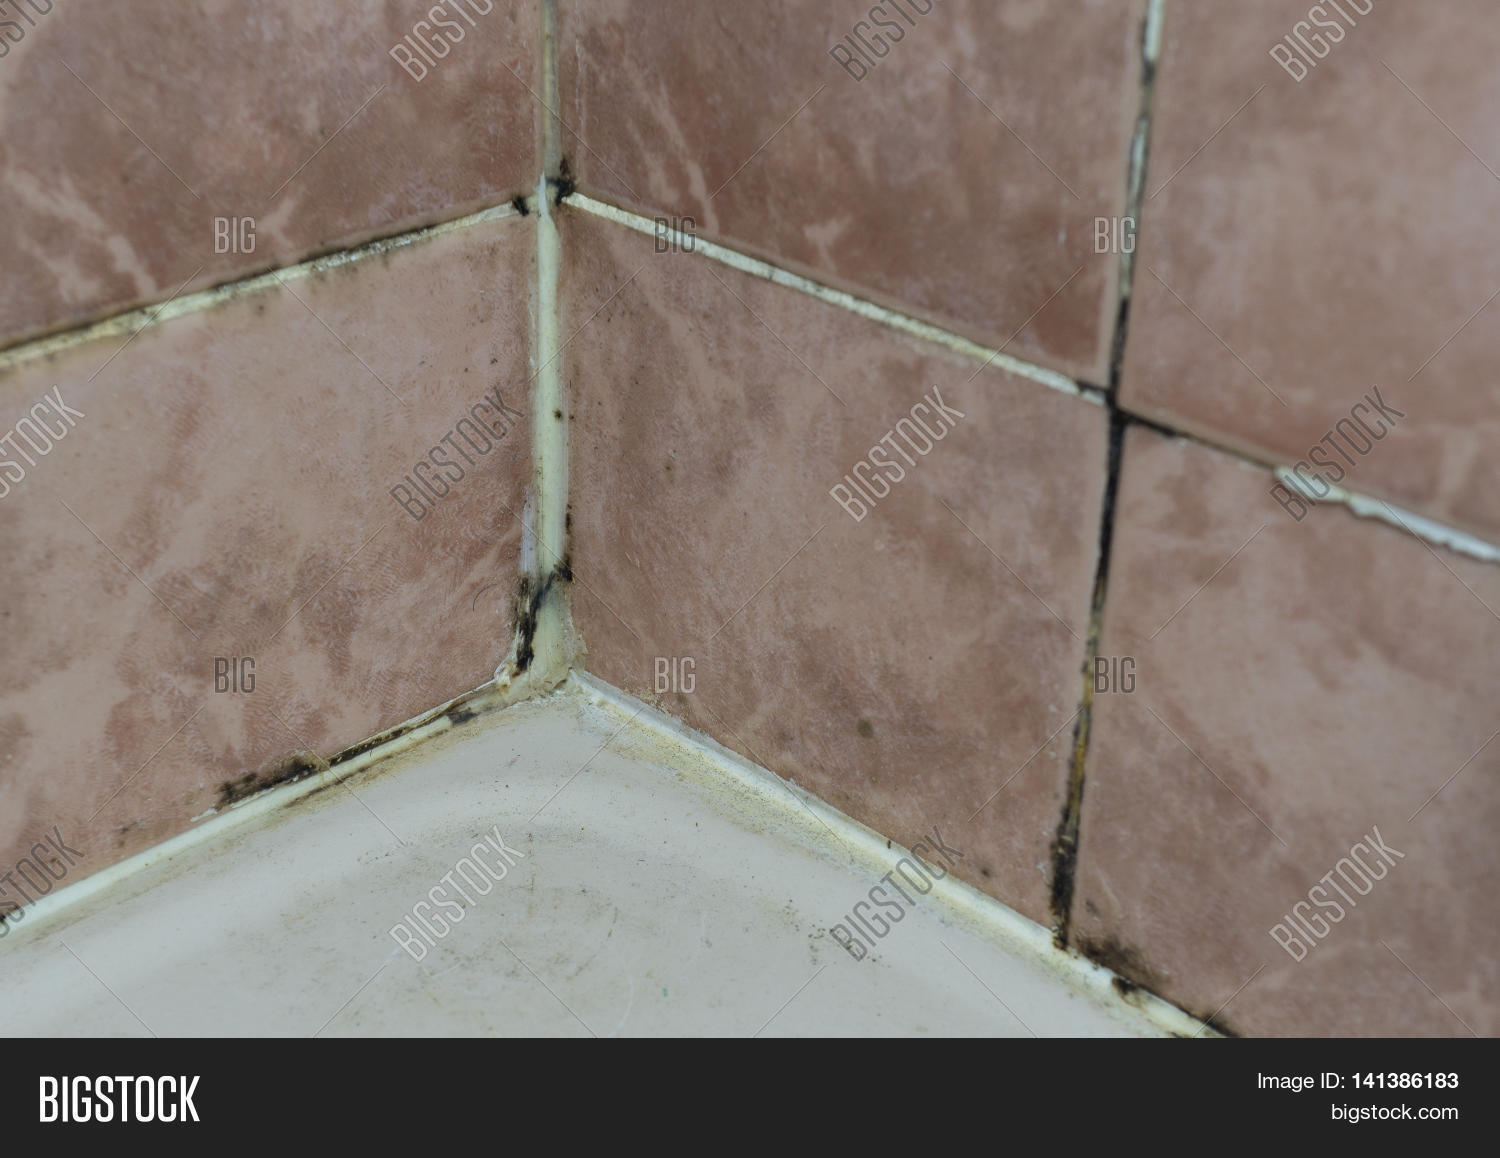 how to kill black mold in shower